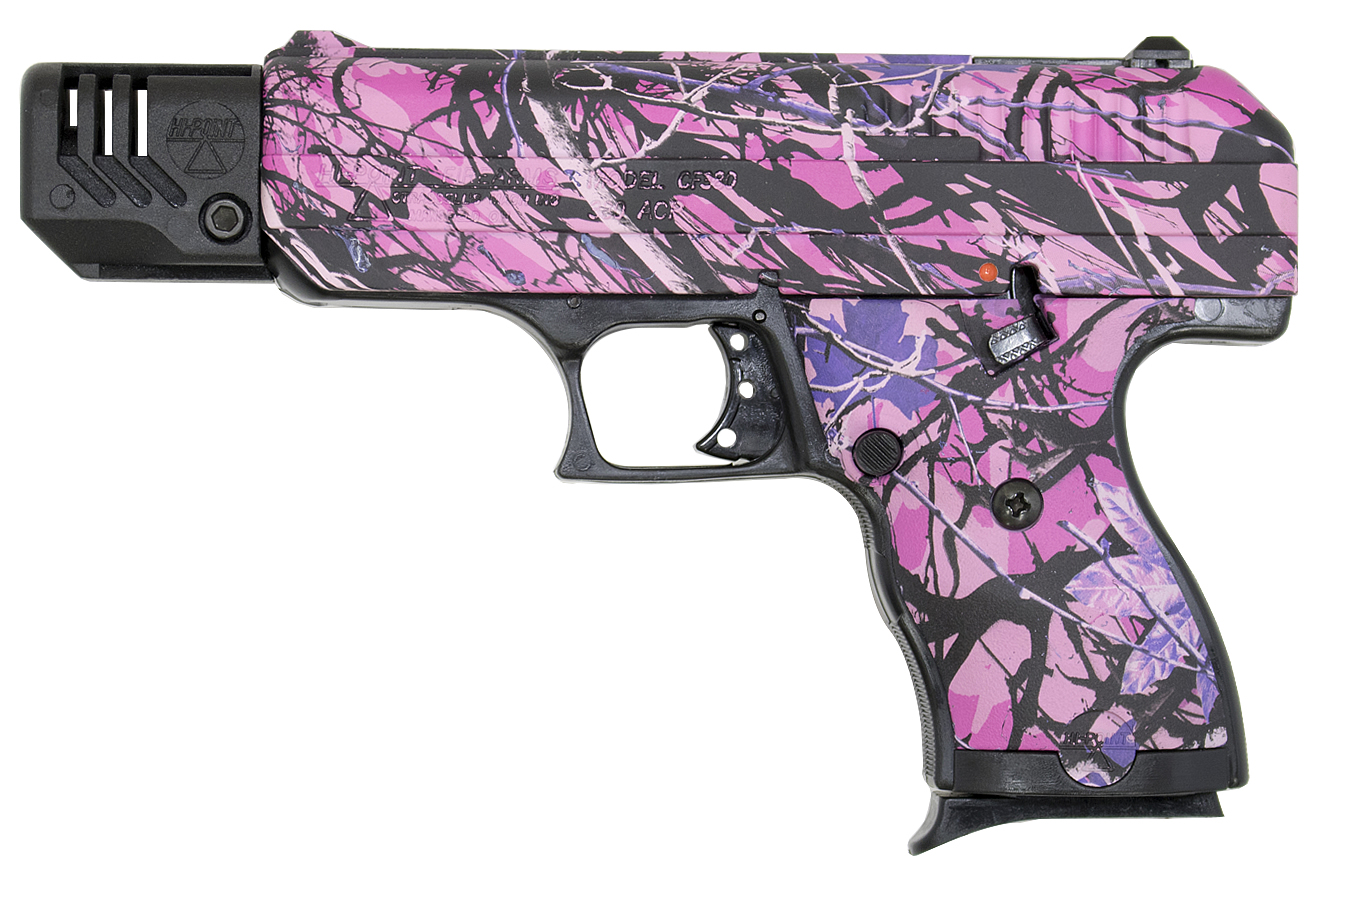 CF380 380 ACP COMPENSATED W/ MUDDY GIRL